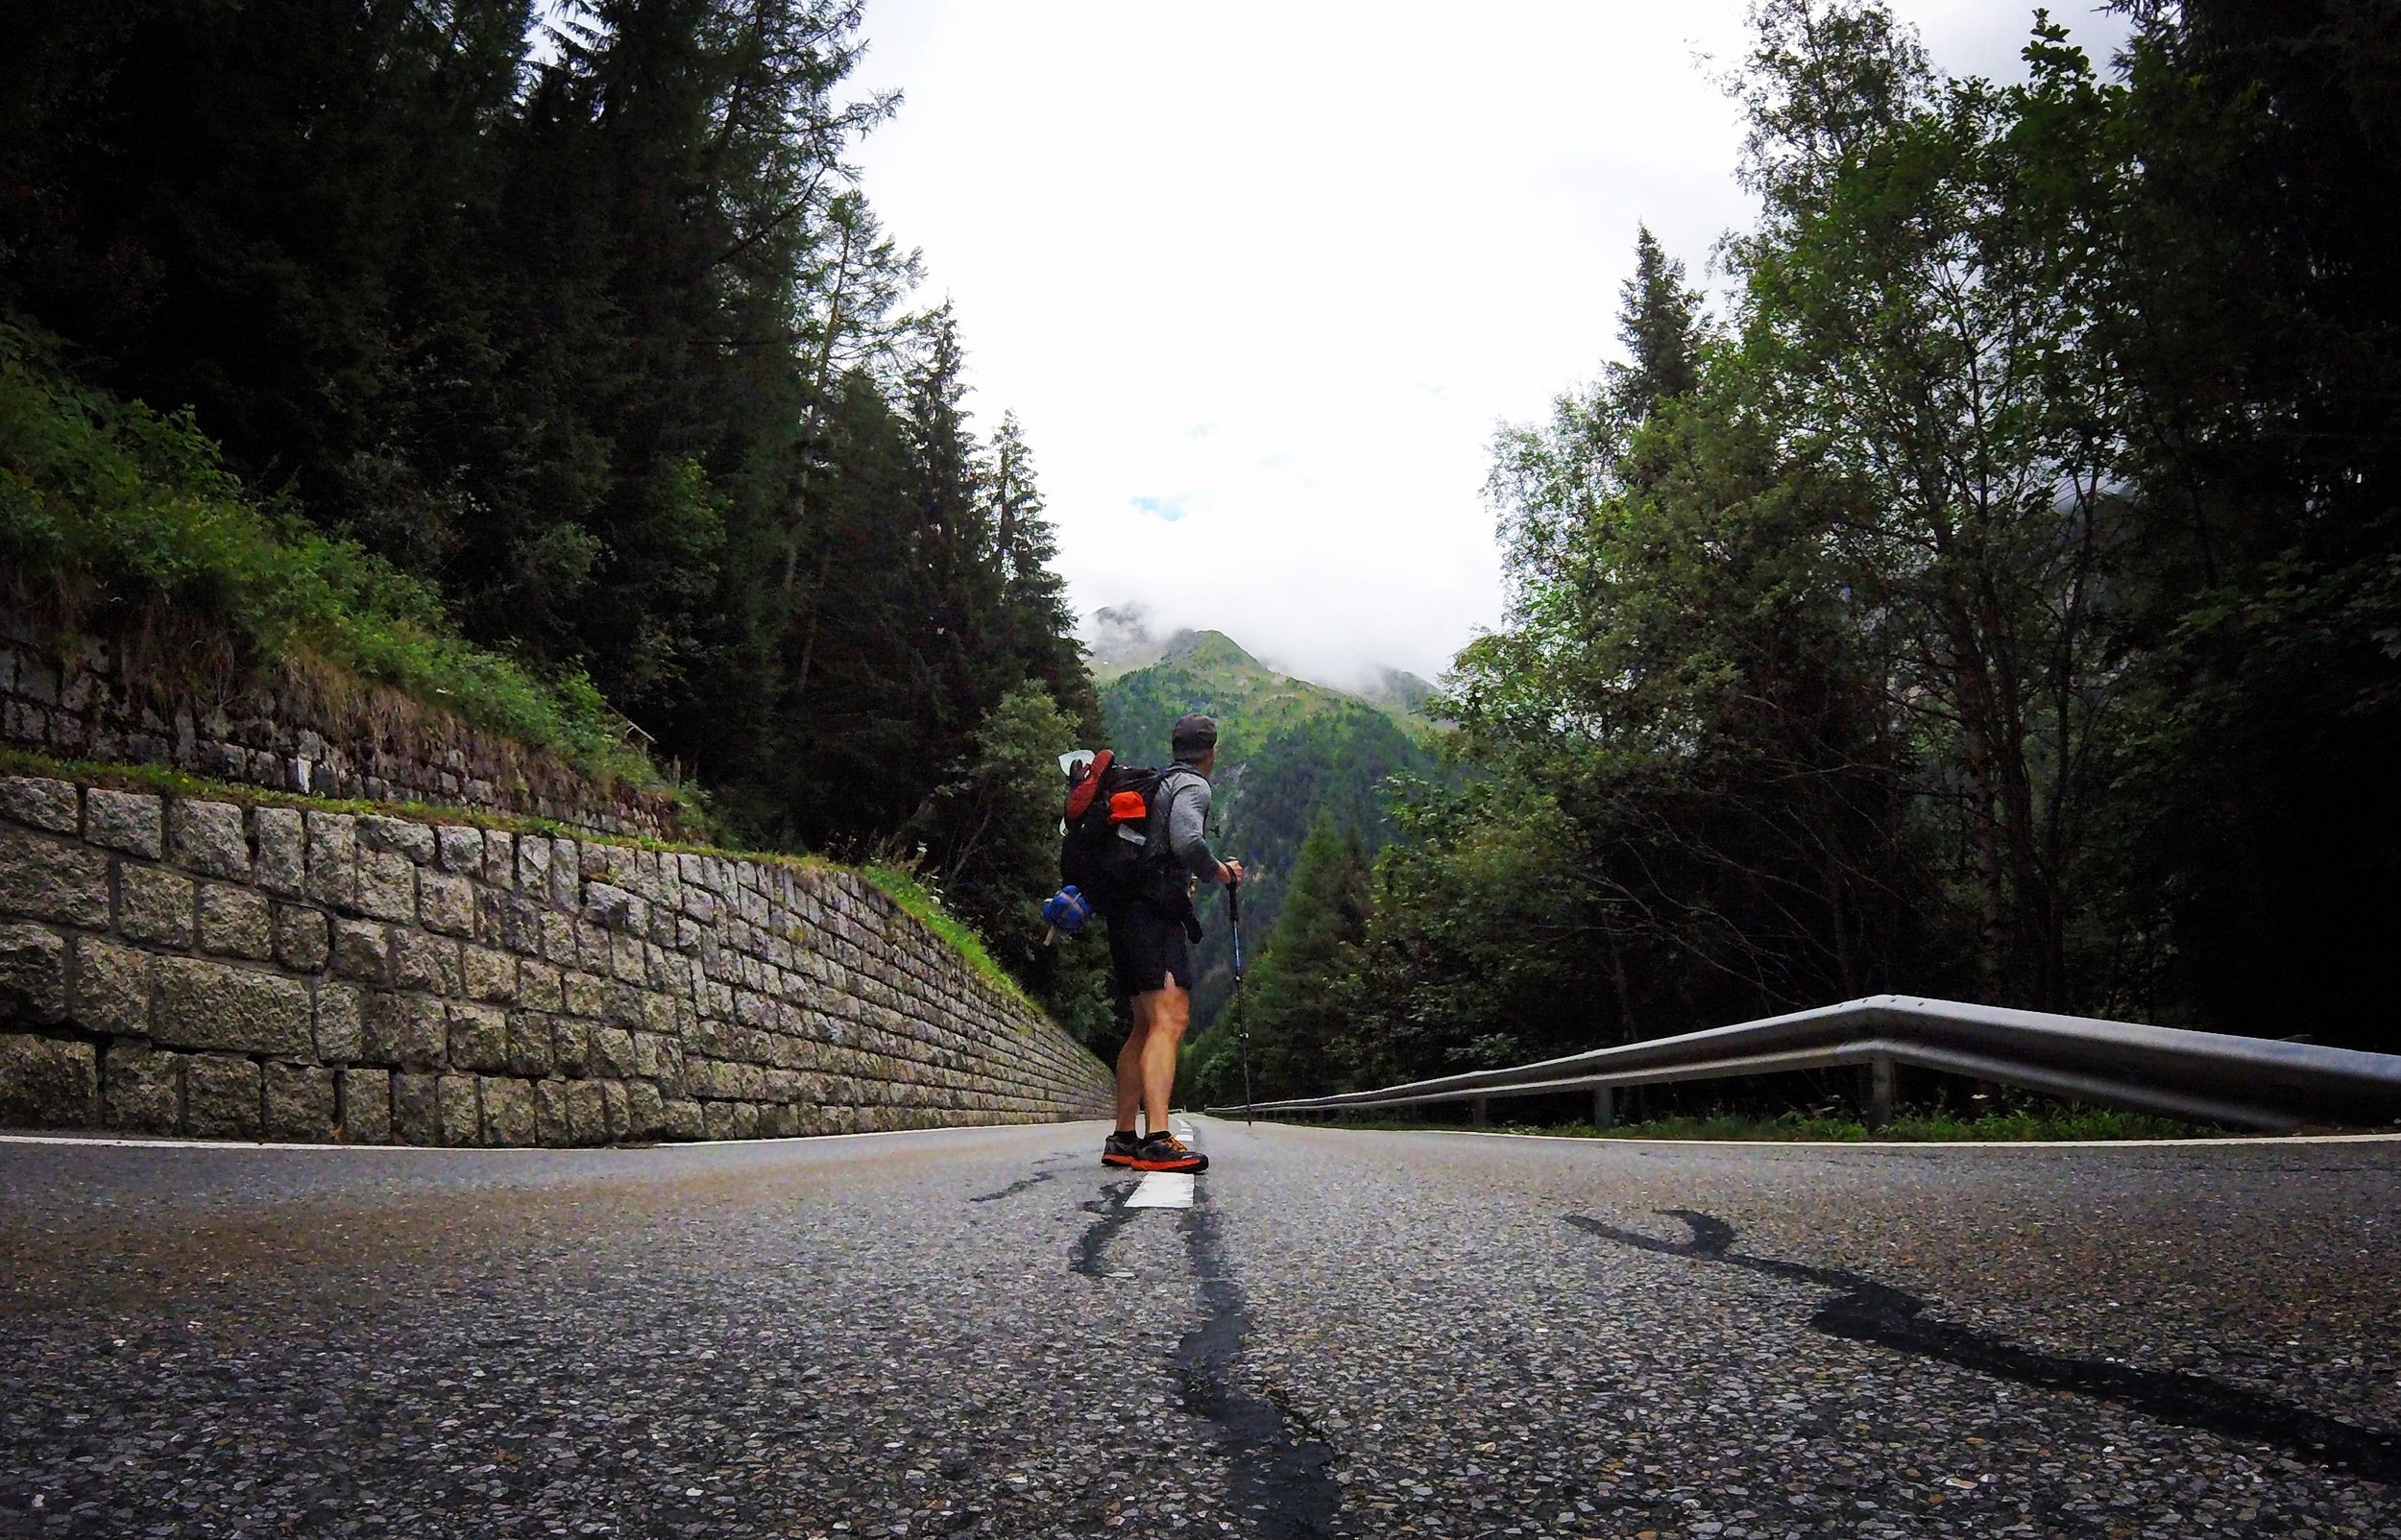 Day 2:   Trient, Valais   The descent to camp passes Route de la Forclaz, turning southern peaks into a breif history.